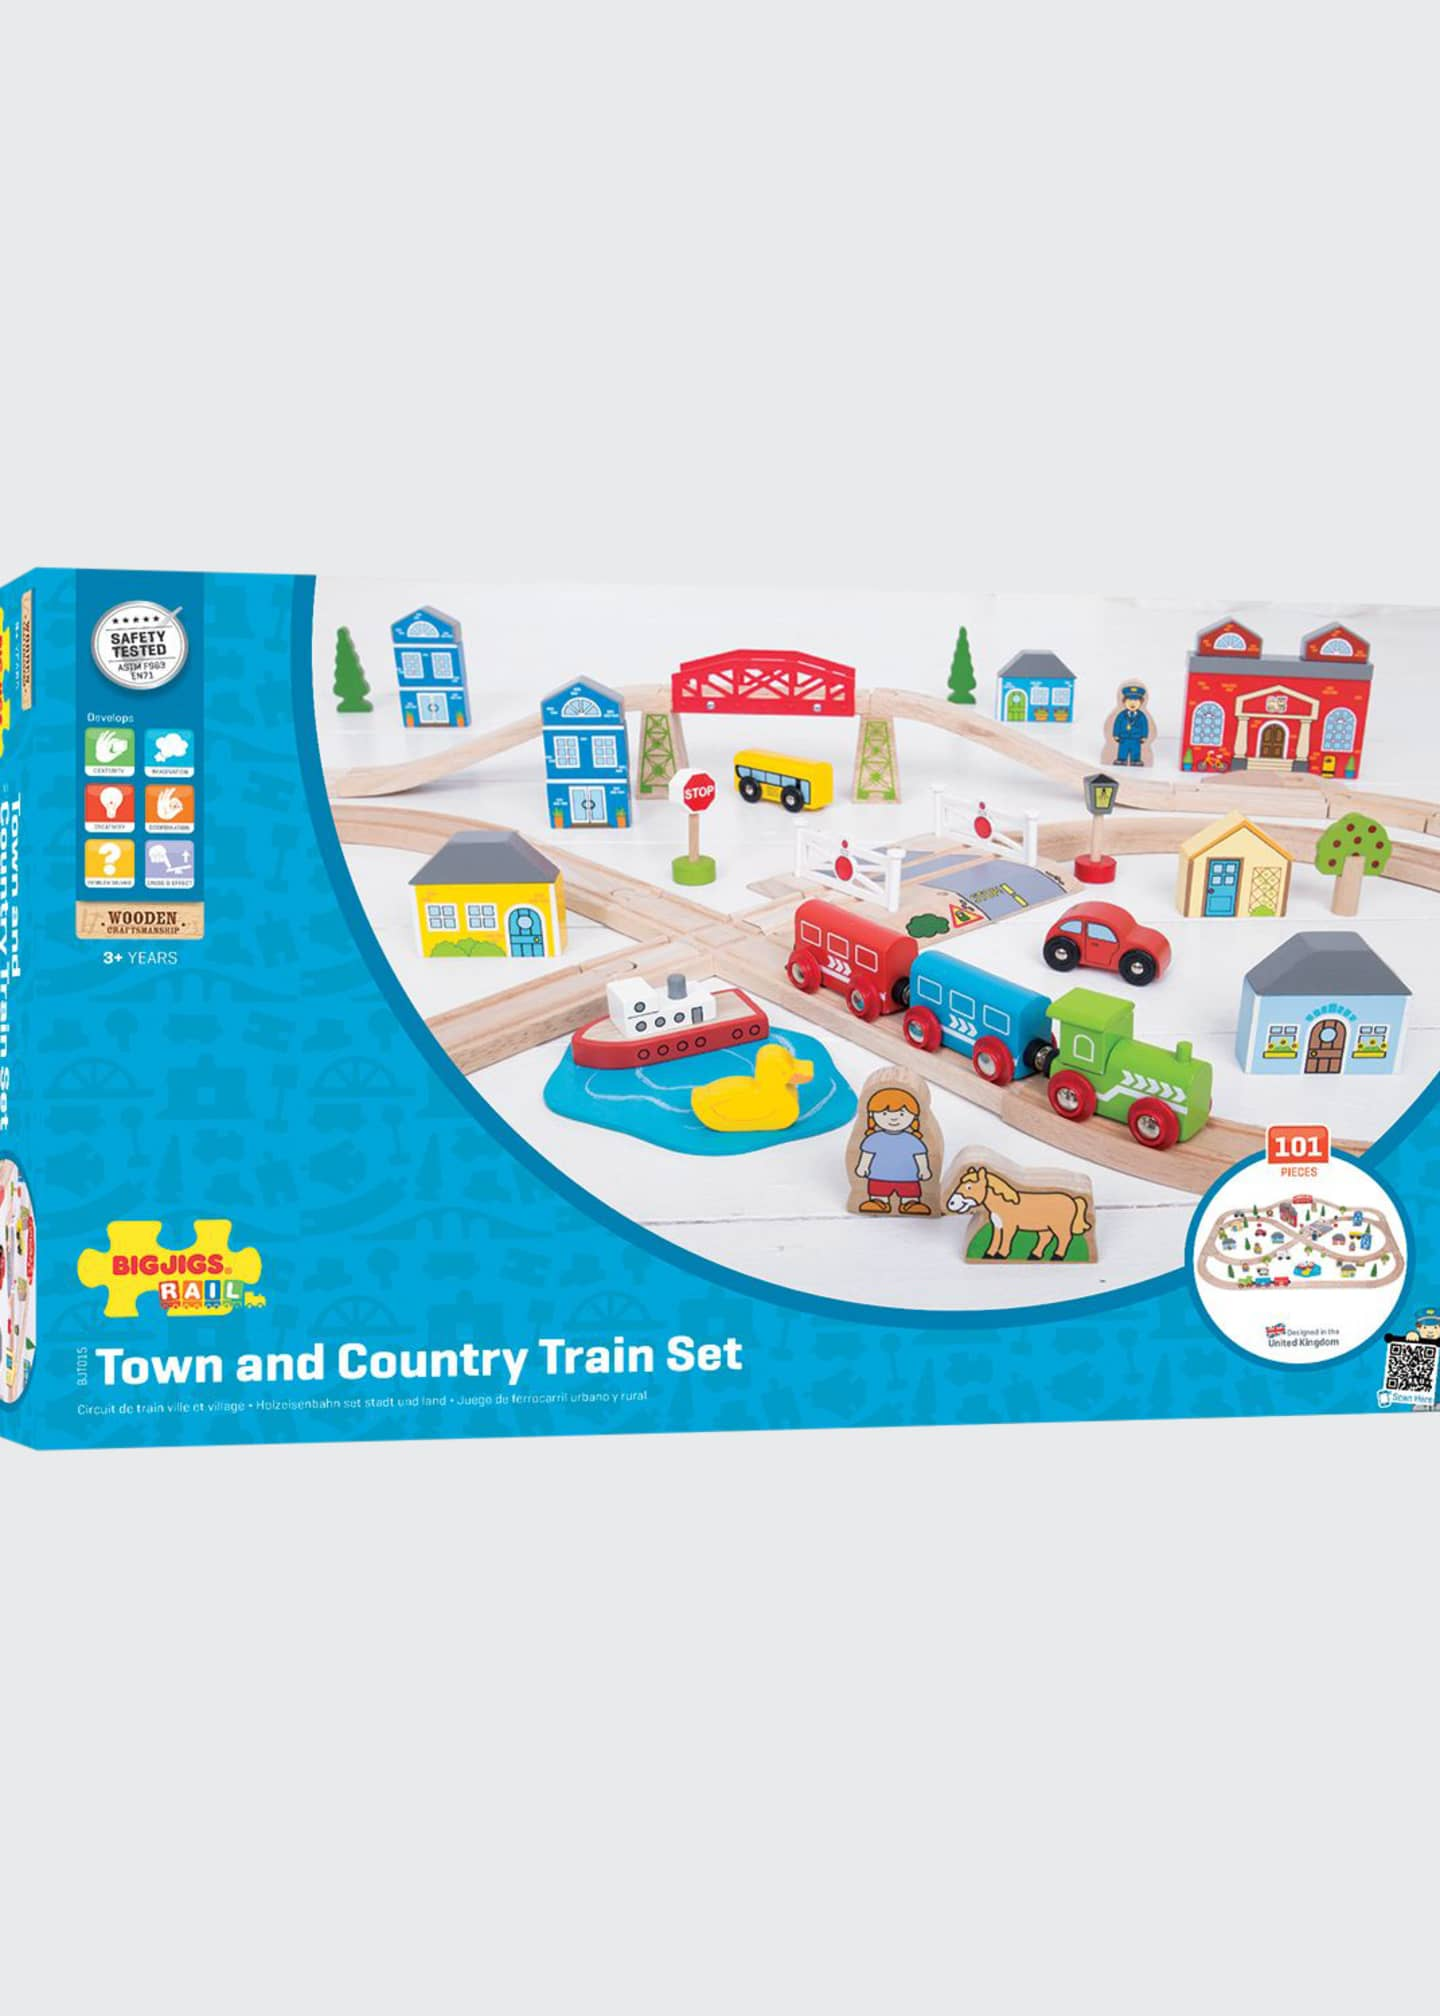 Image 1 of 2: Town and Country Train Set